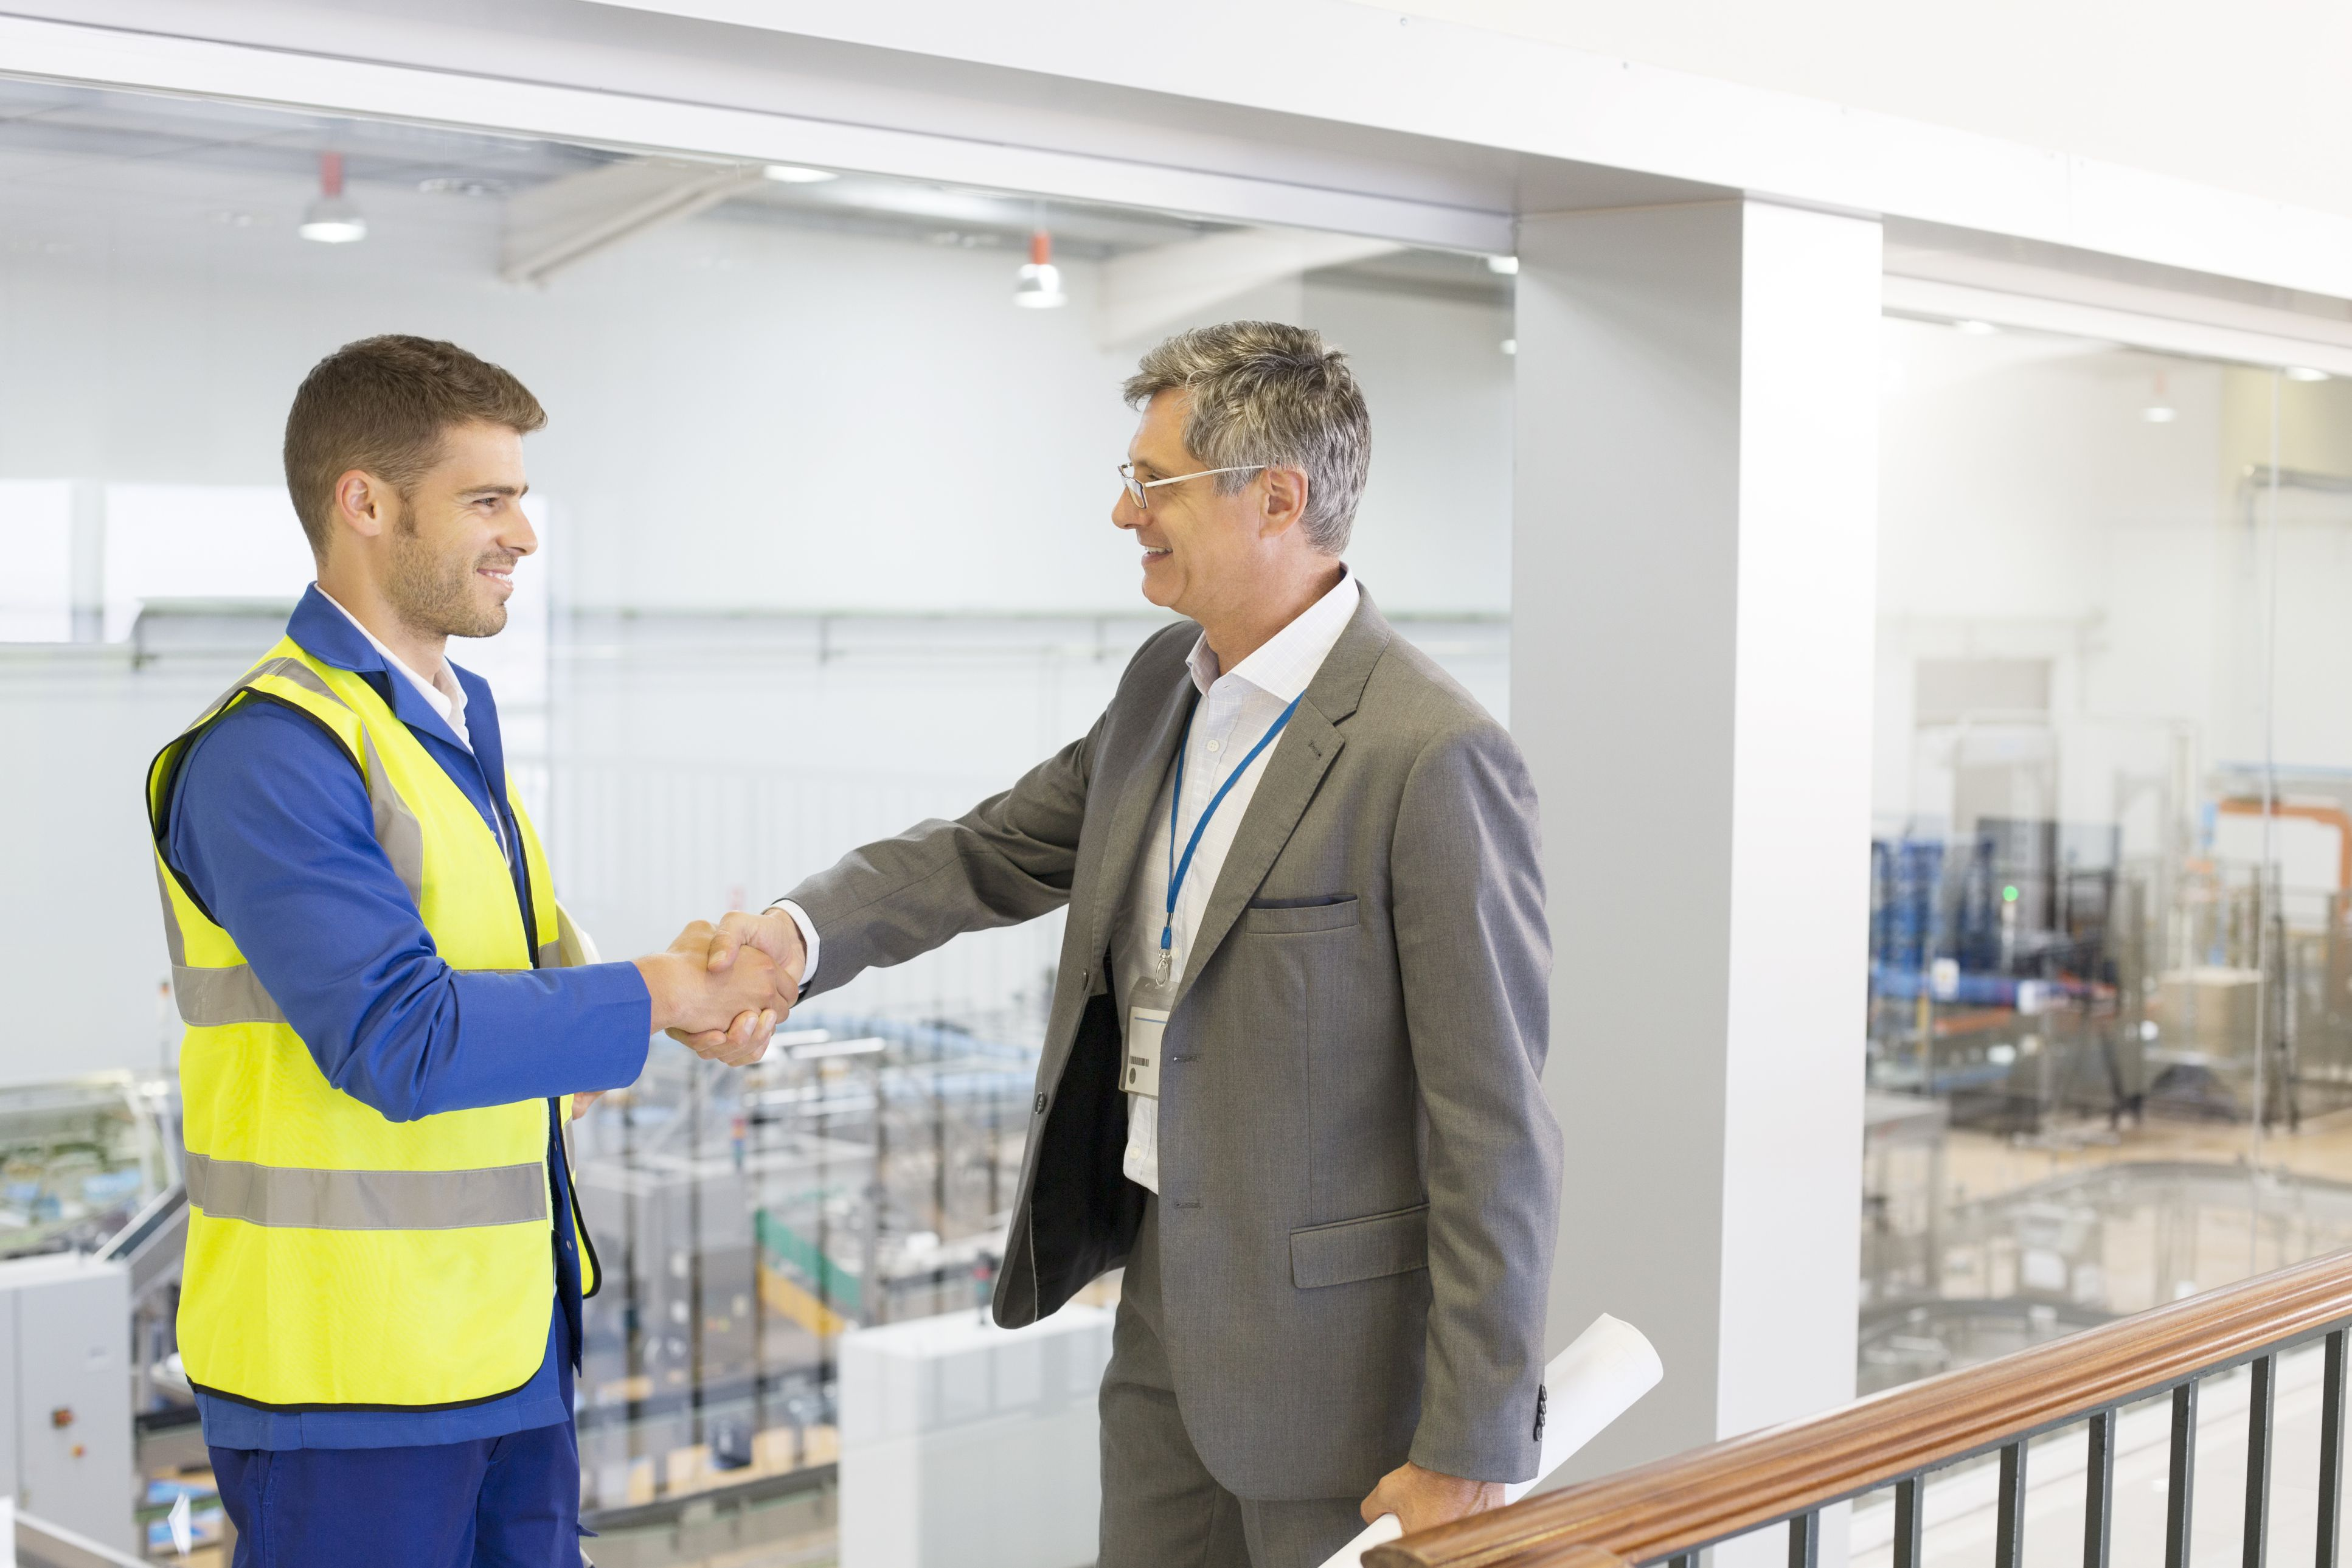 are your sales people employees or contractors